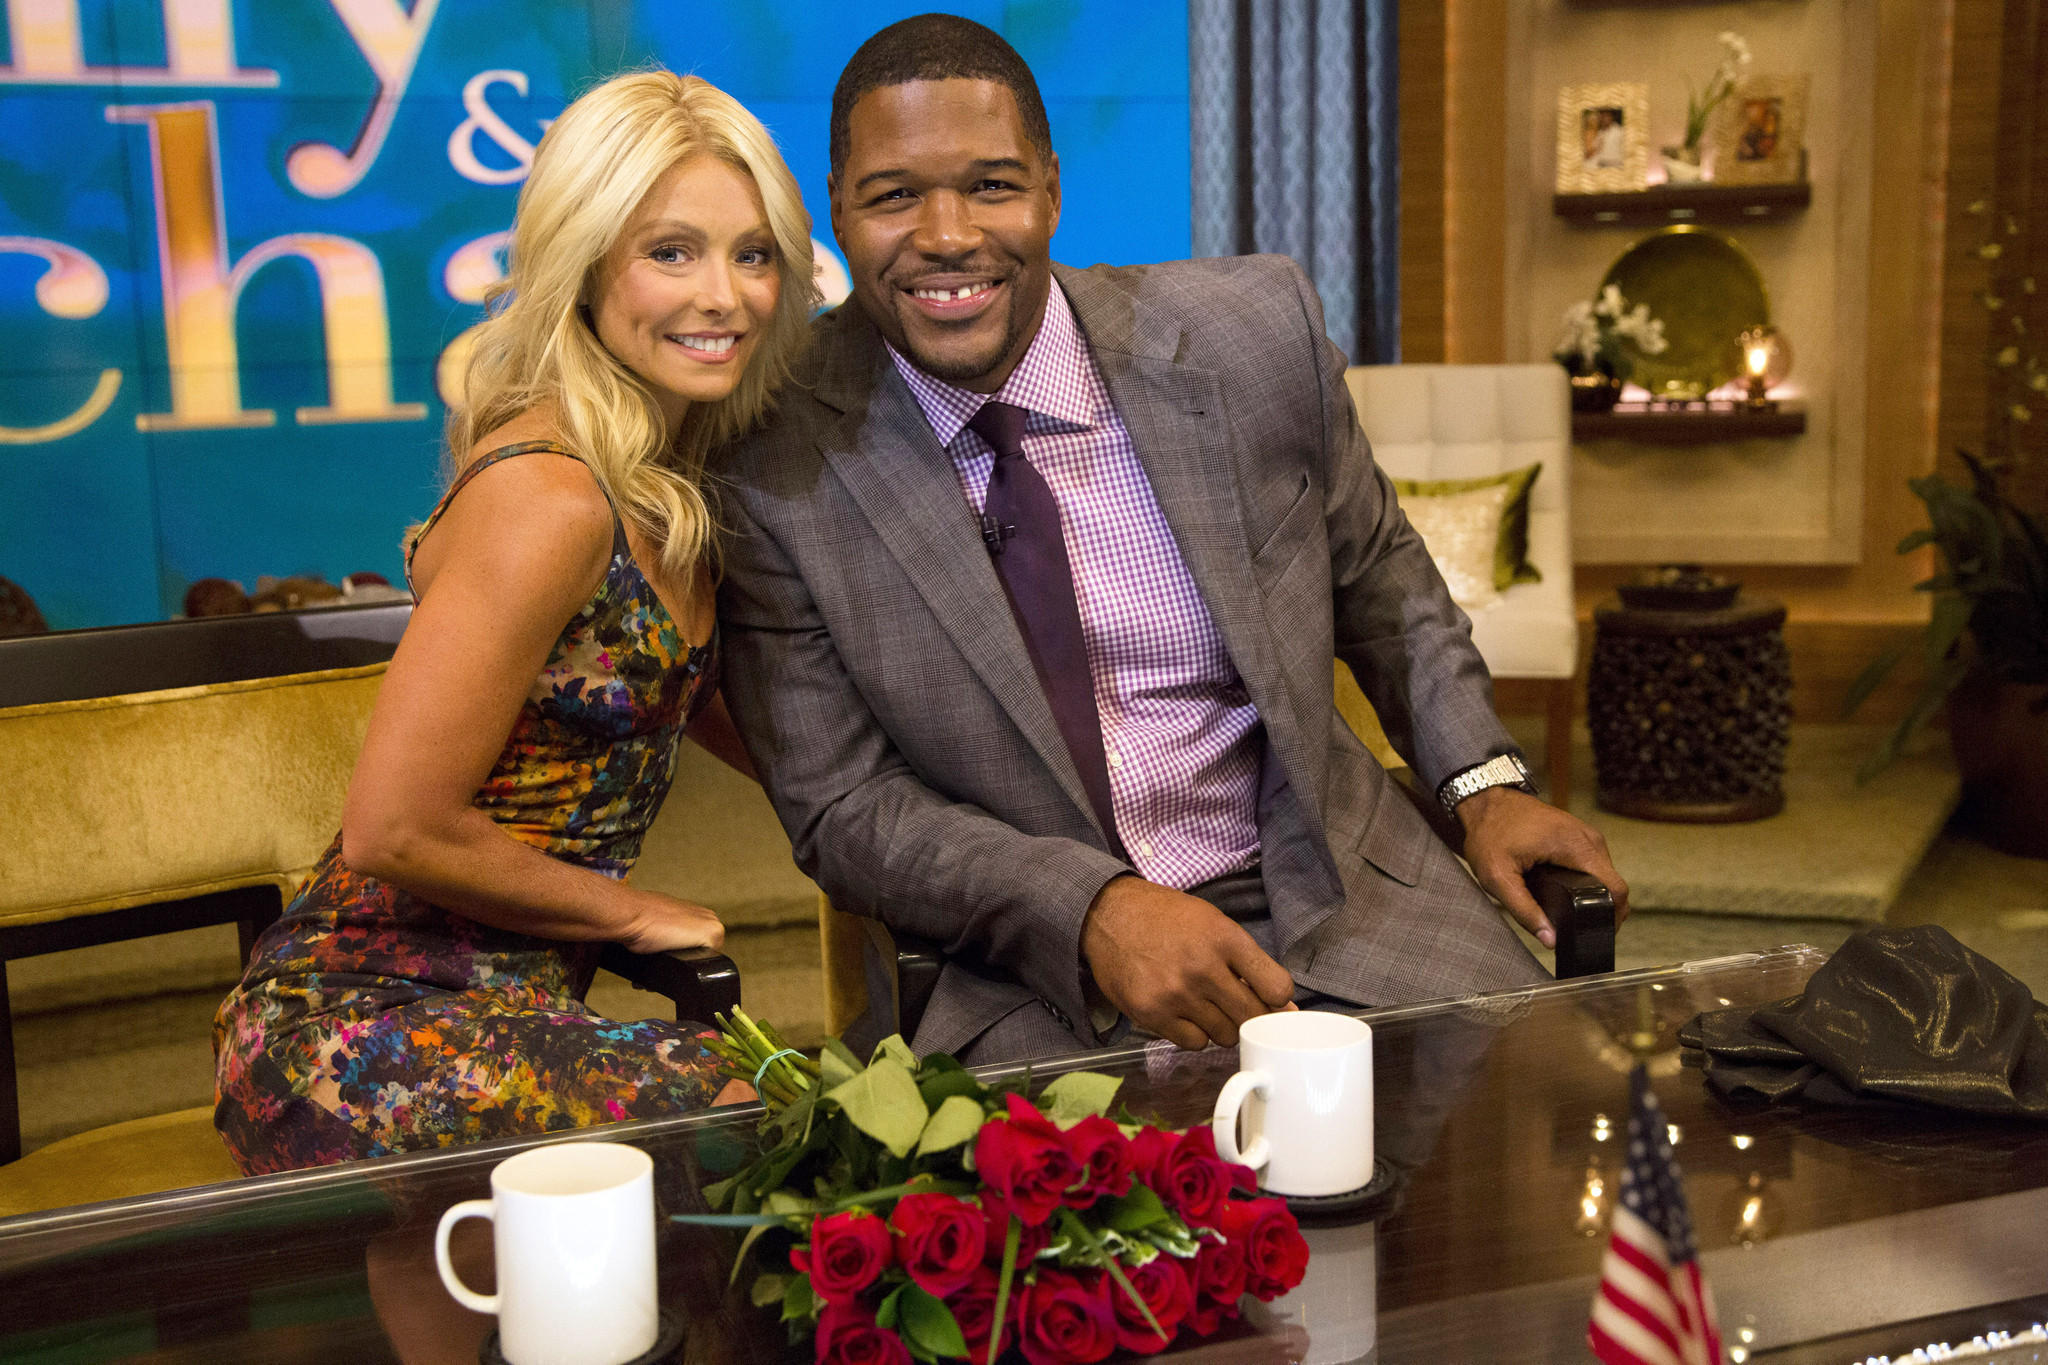 Michael Strahan says goodbye to Kelly Ripa and 'Live' - LA Times